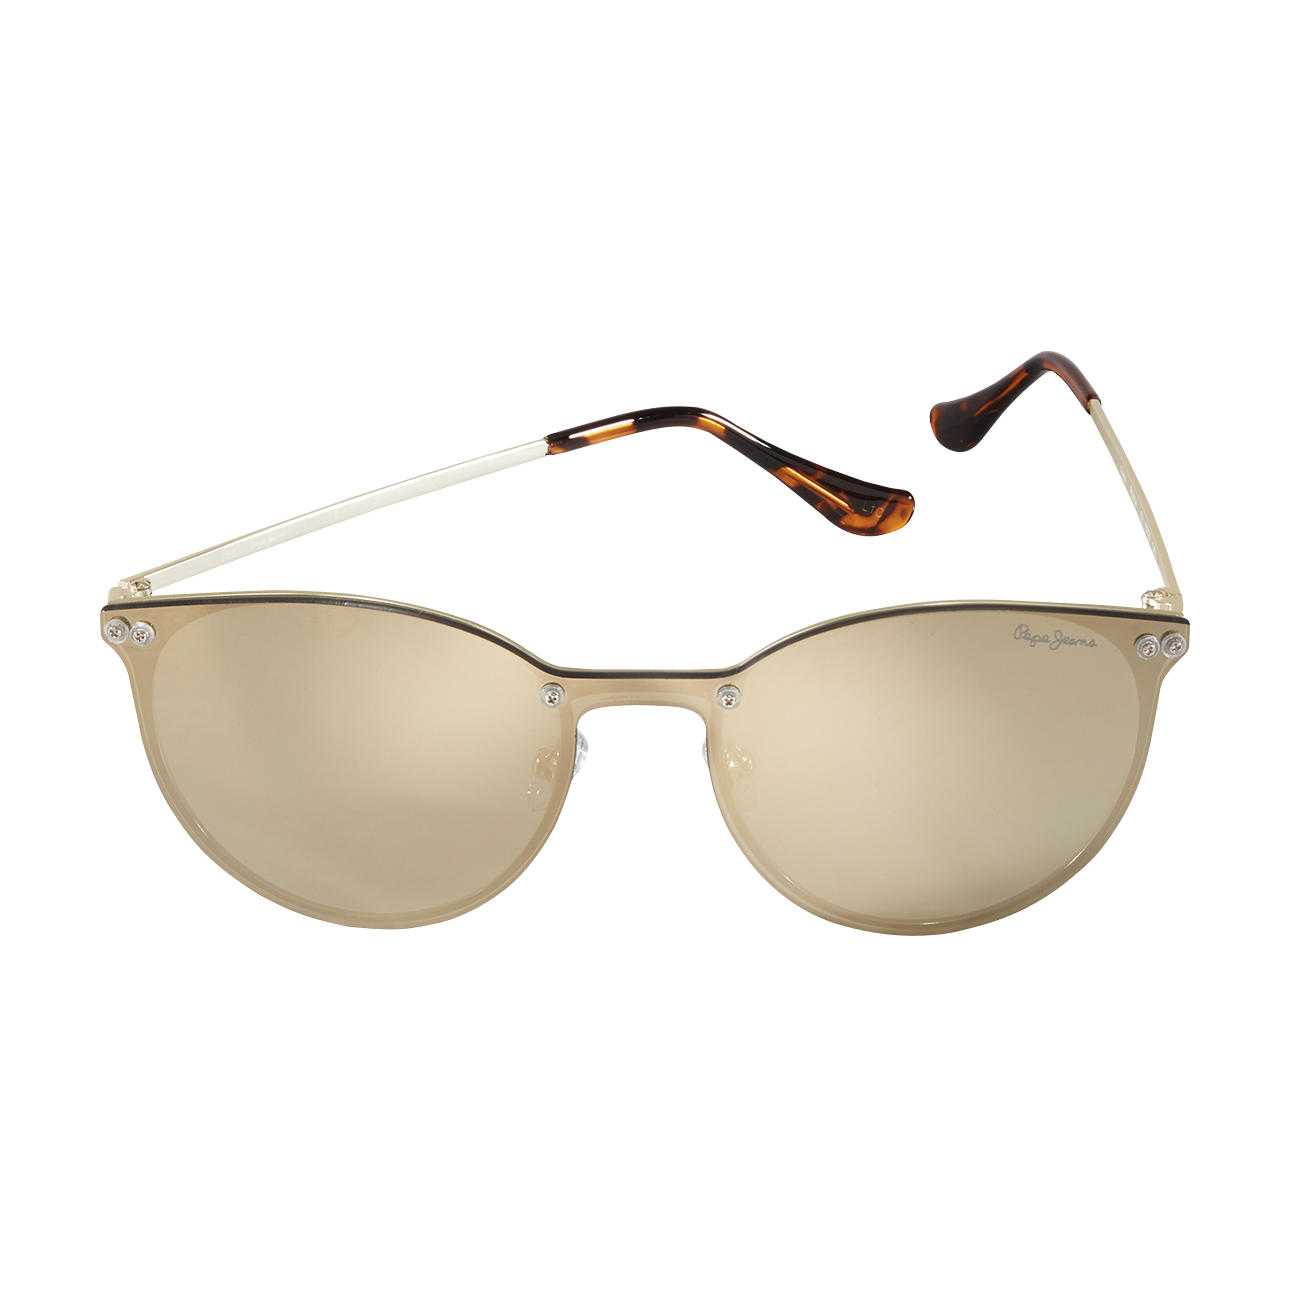 Pepe Jeans Flat Lense-Gold-Shades | Mode-Highlights